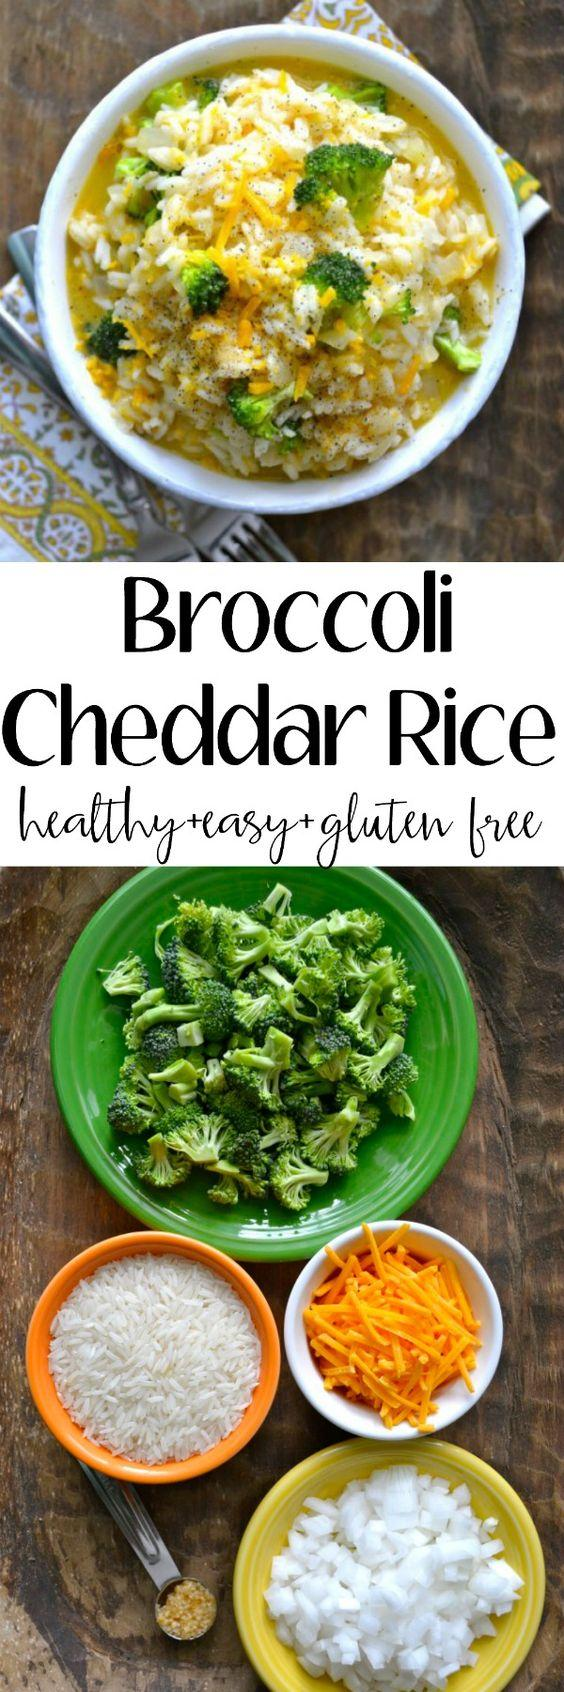 Vegetable Recipes For Kids || Kid Friendly Vegetable Recipes. Creamy Broccoli Cheddar Rice!! This is the ultimate comfort food! Perfect as an easy side dish or a vegetarian meal! Loaded with sharp cheddar, tender rice and fresh broccoli! Gluten free!